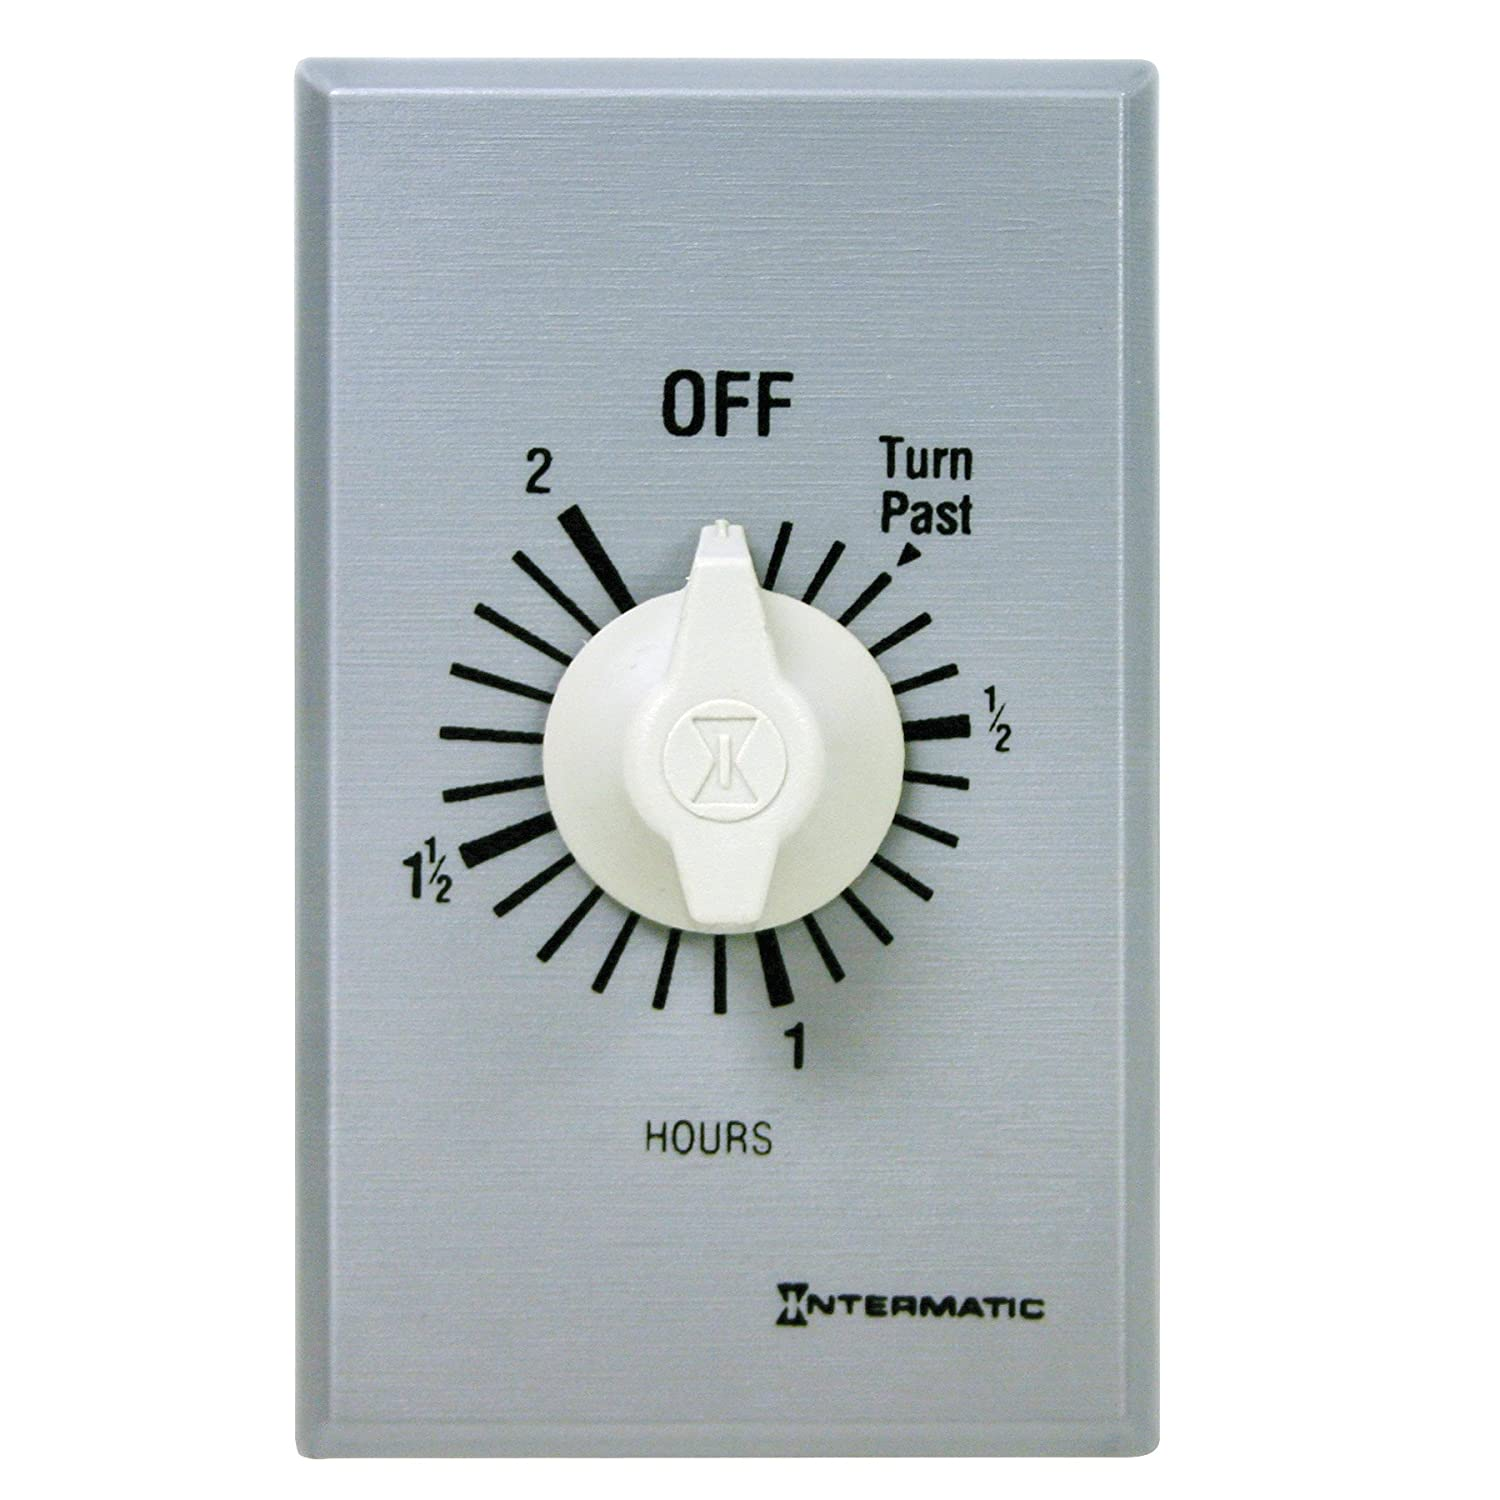 81gq9QCh2CL._SL1500_ intermatic ff2h 2 hour spring loaded wall timer, brushed metal  at soozxer.org